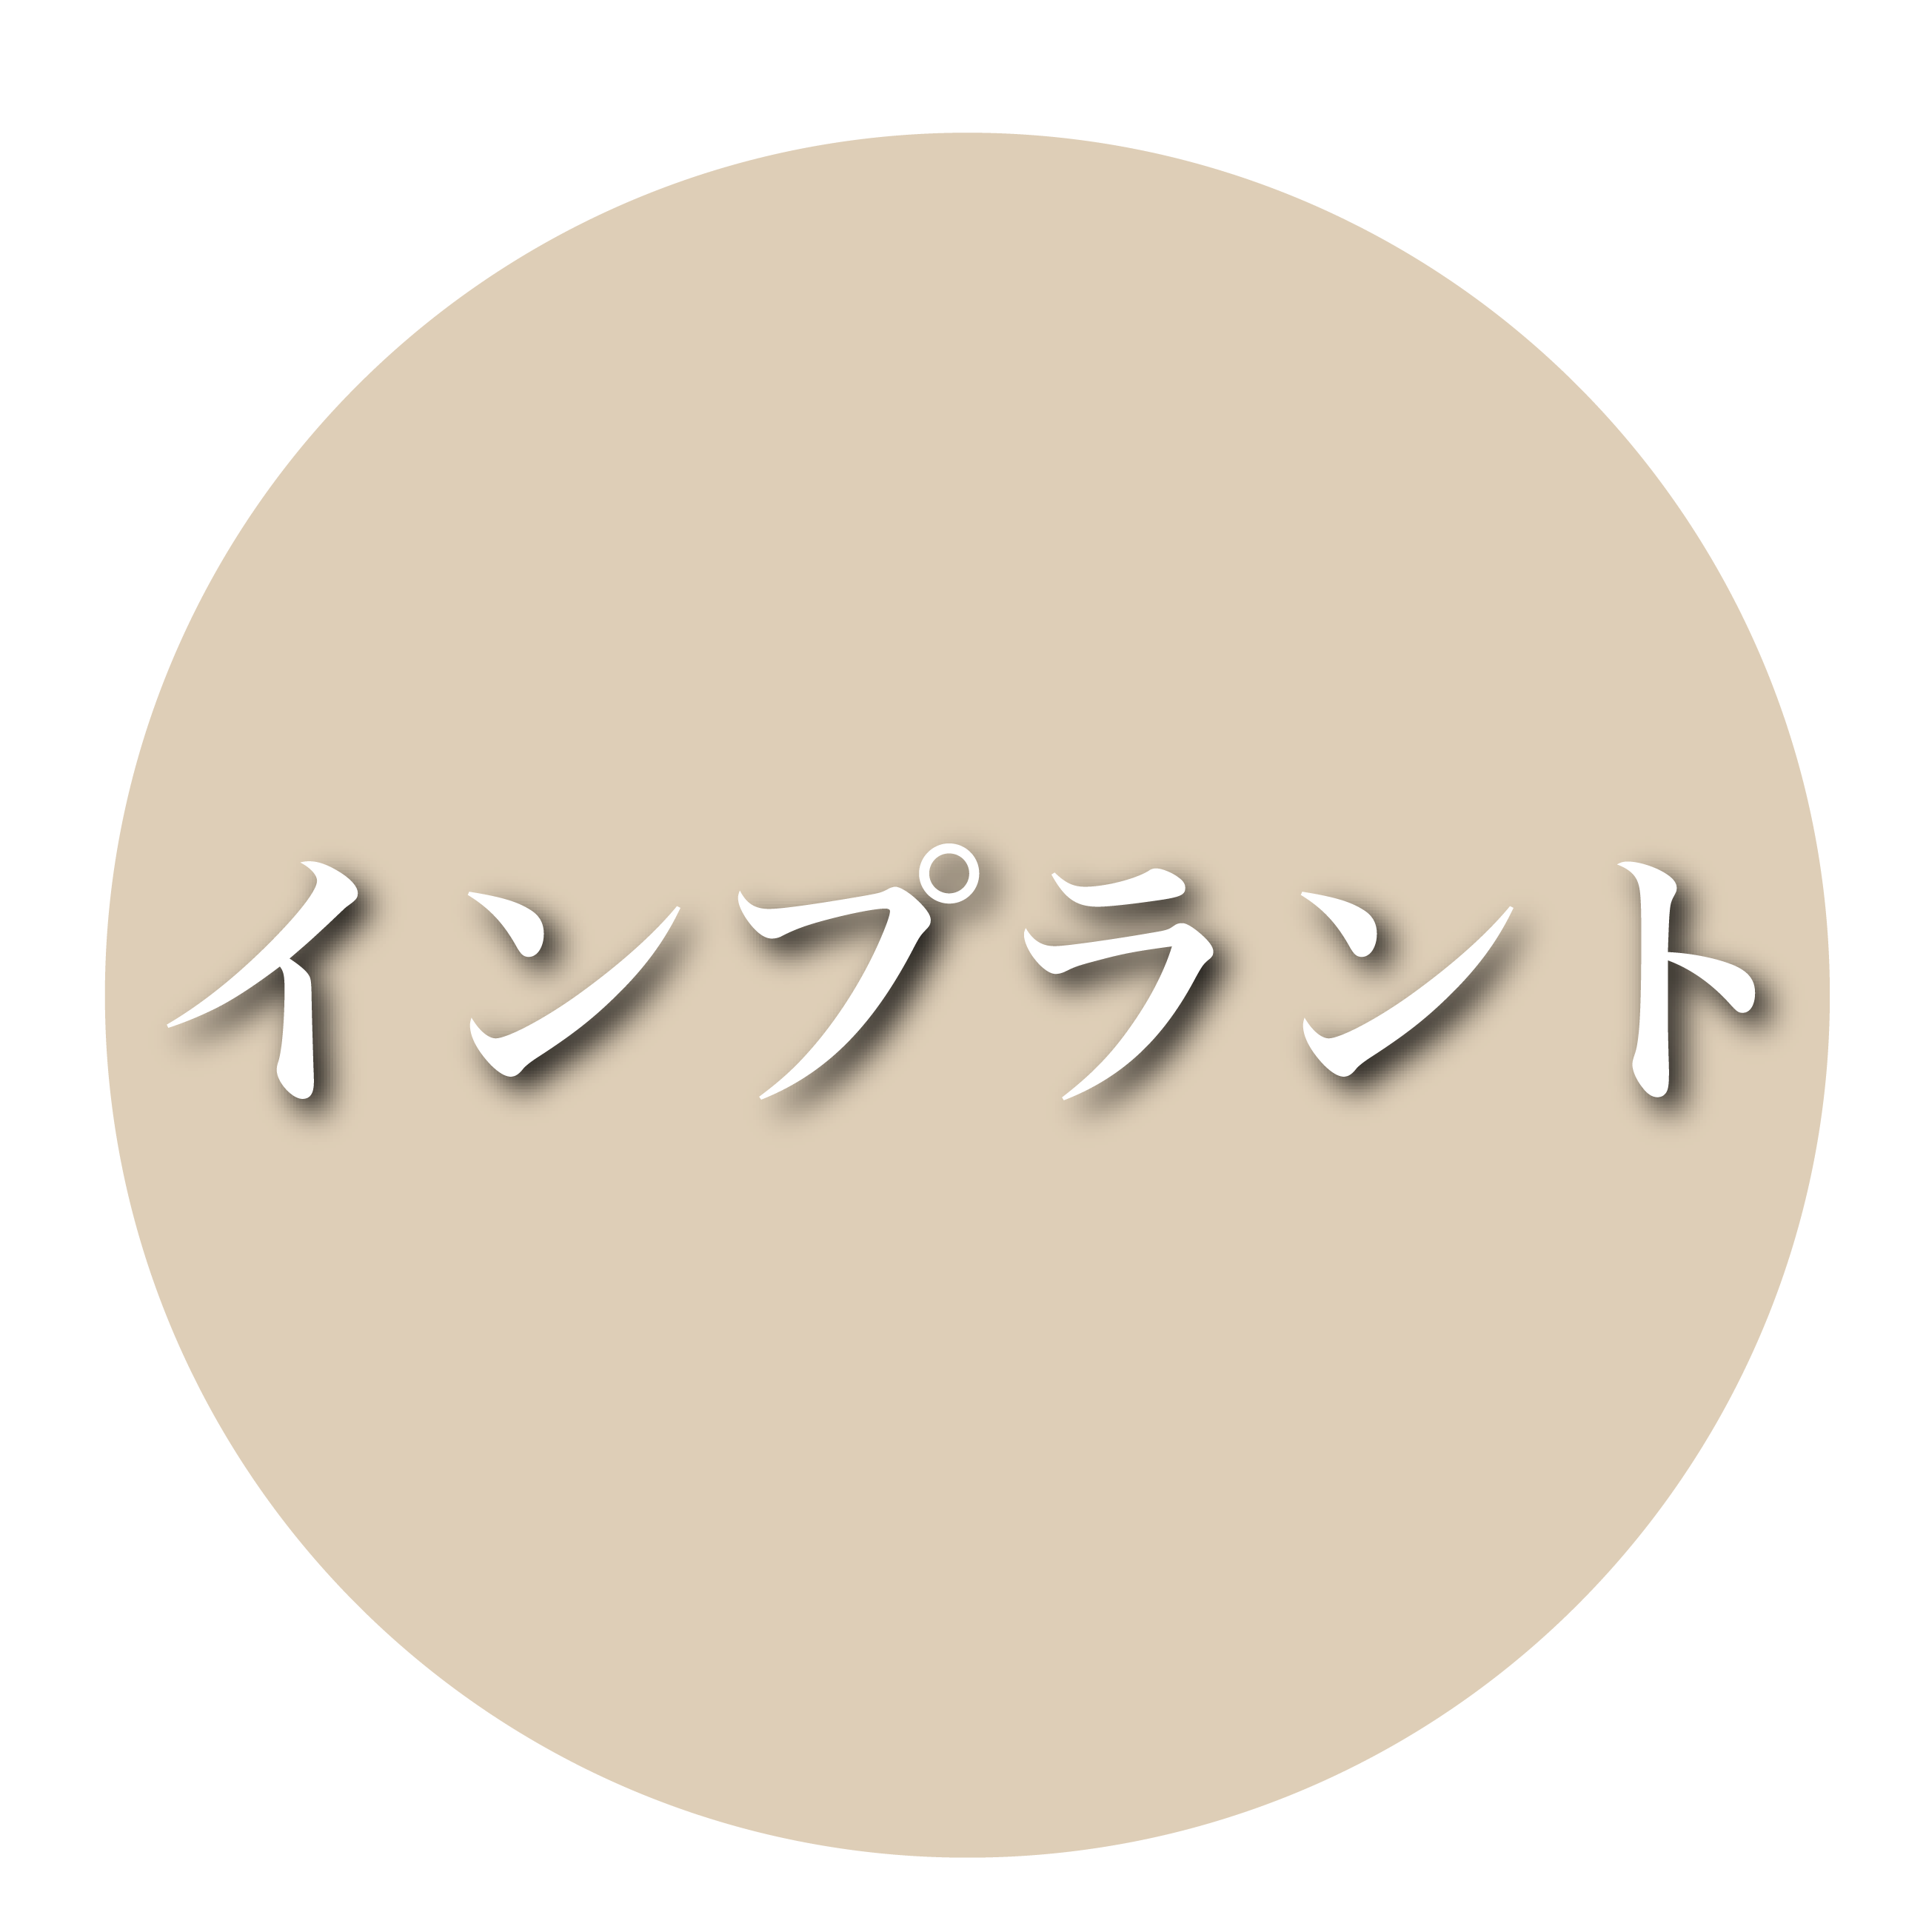 """cghj アートボード 1 - <span style=""""font-family: serif;"""">インプラント"""